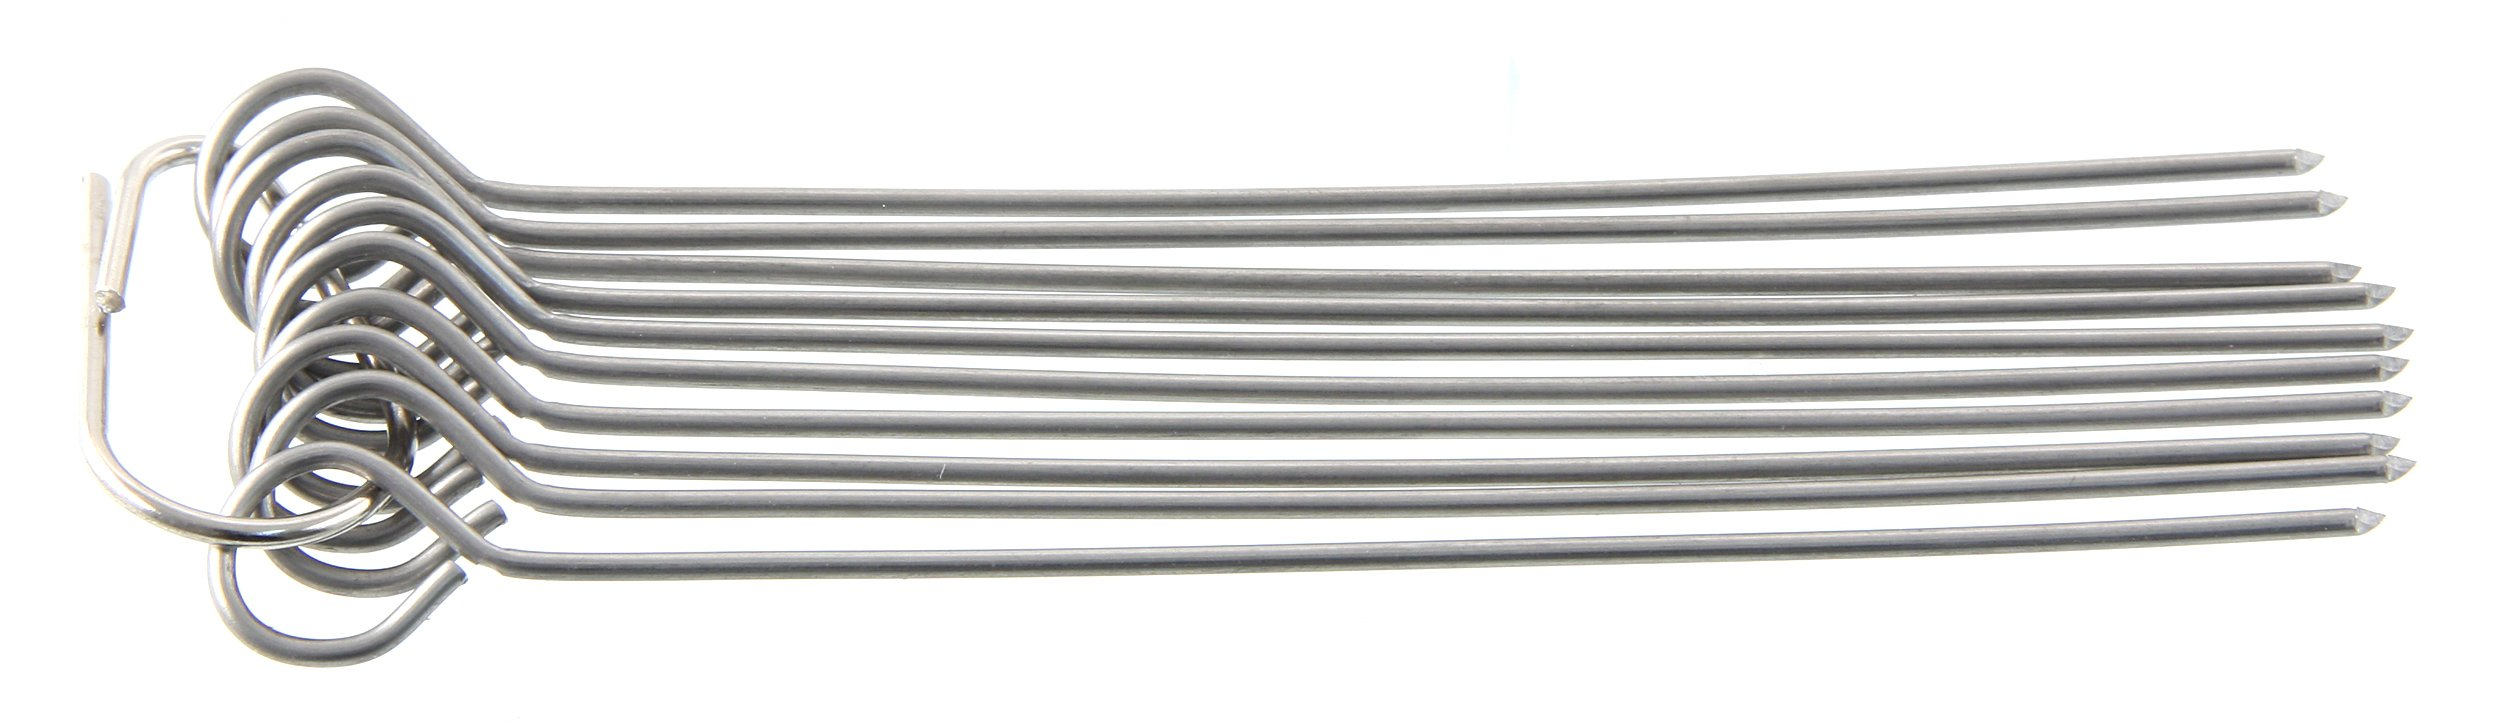 Fackelmann Rouladen Needles, Meat Needles, Metal Skewers, Cocktail Skewers Made Stainless Steel (Colour: Silver), Quantity: 10 Pieces